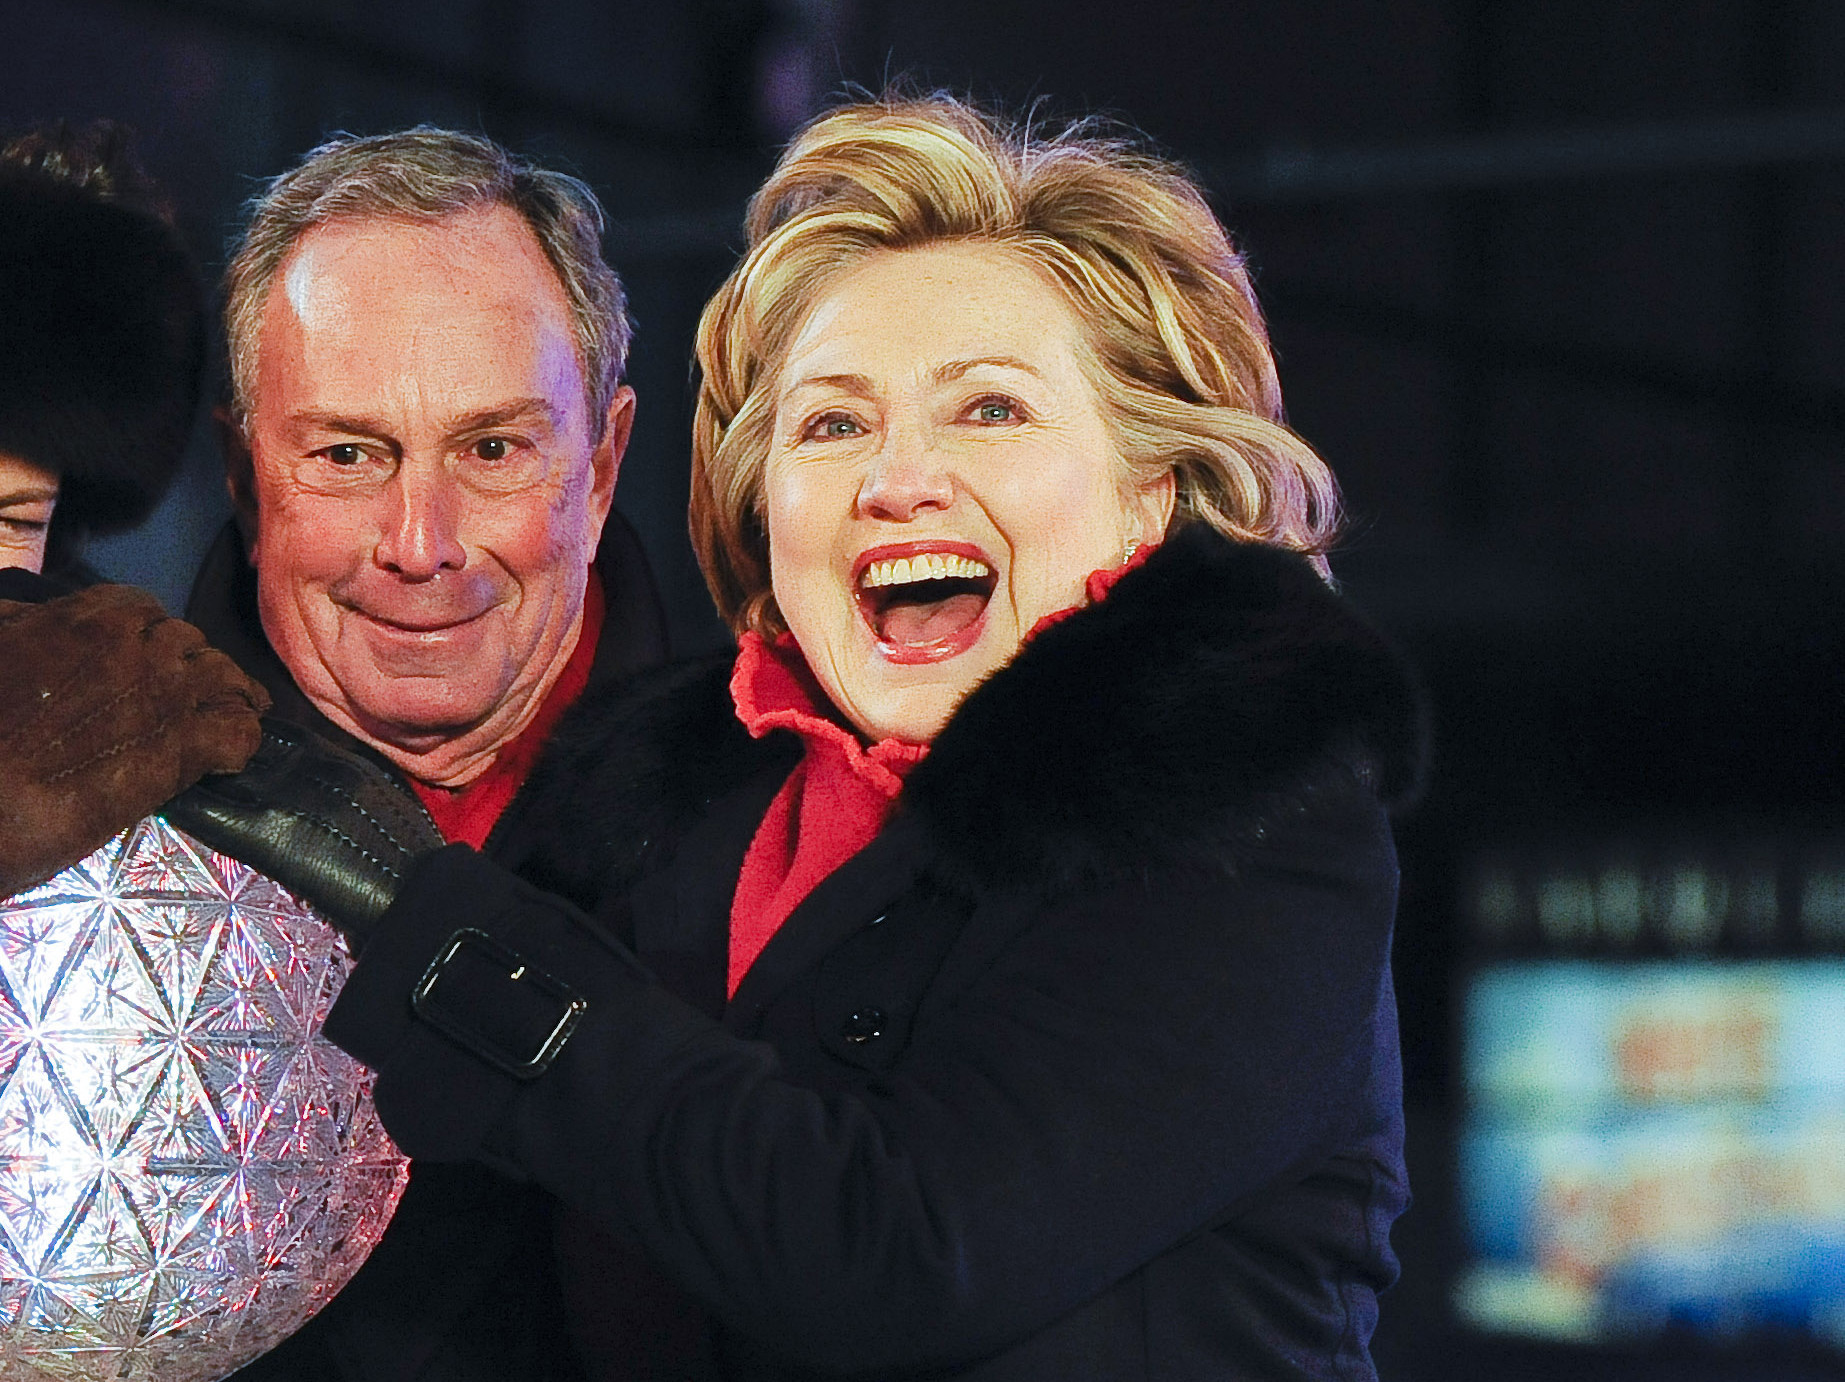 Hillary for vice president? Bloomberg campaign won't shoot down 'speculation' about Clinton as running mate